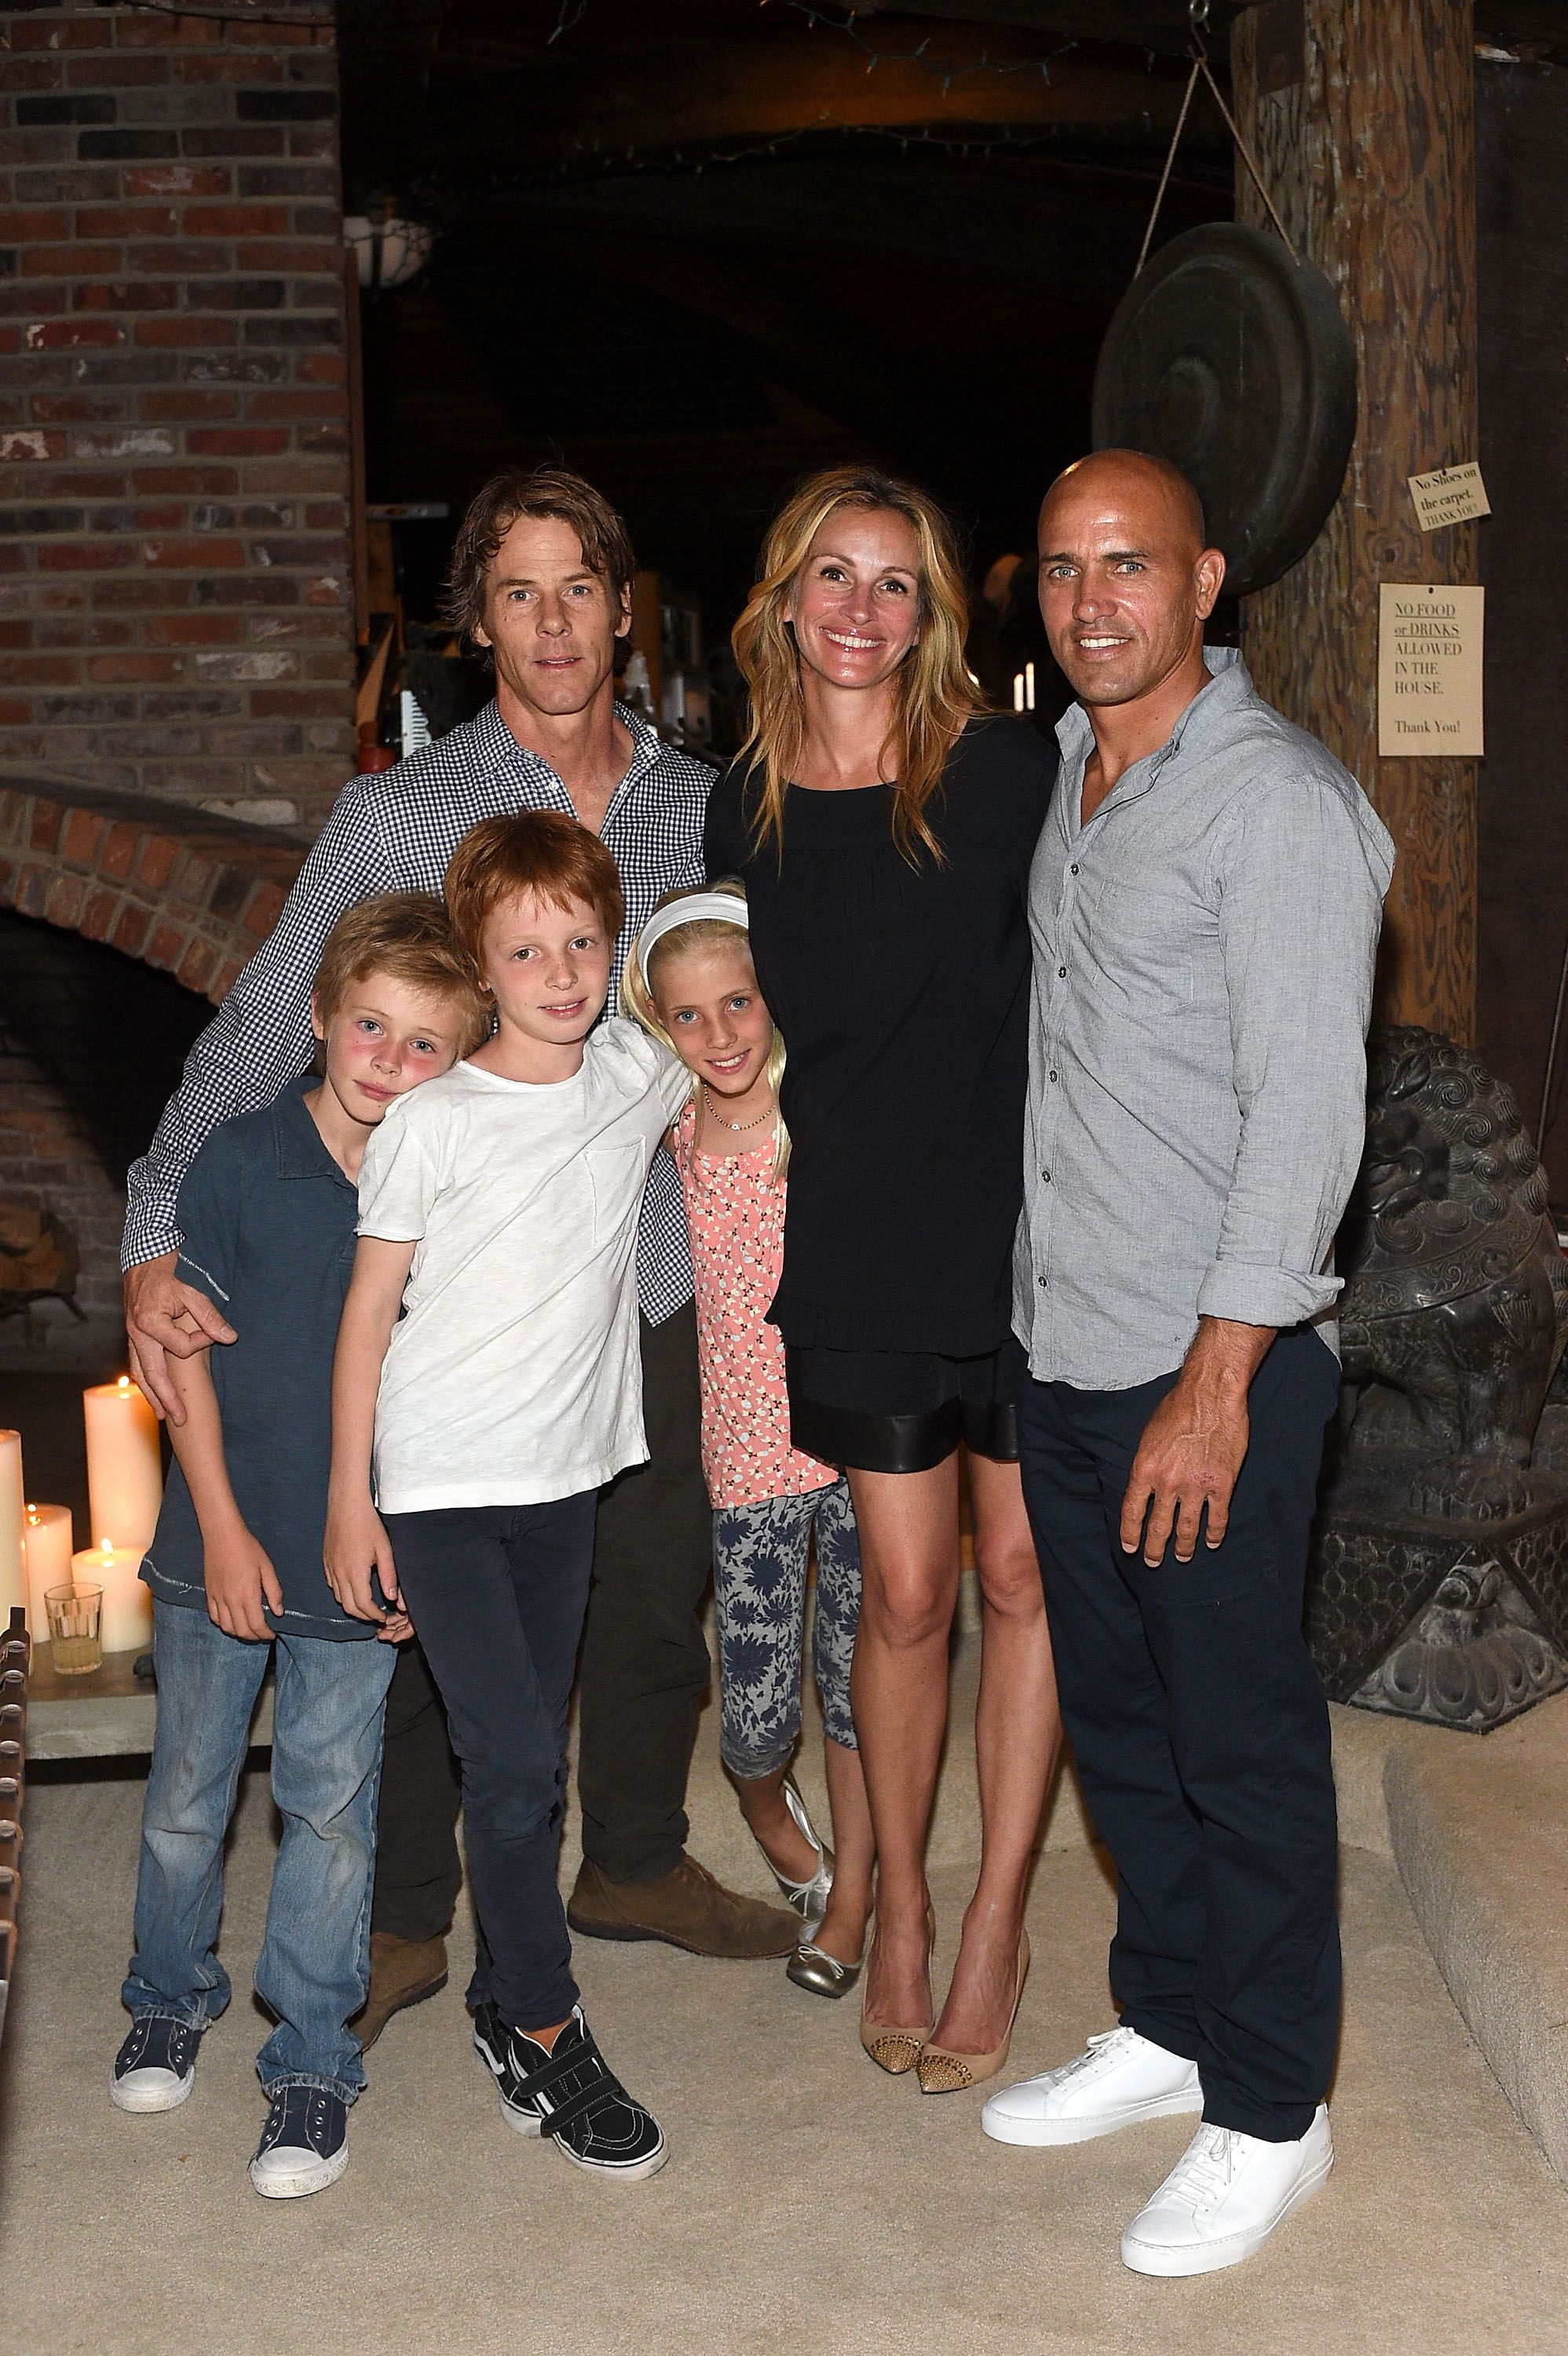 Daniel Moder, Julia Roberts, and children Phinnaeus, Henry, and Hazel Moder, and Kelly Slater at the celebration of the launch of Outerknown on August 29, 2015, in Malibu, California | Photo: Stefanie Keenan/Getty Images